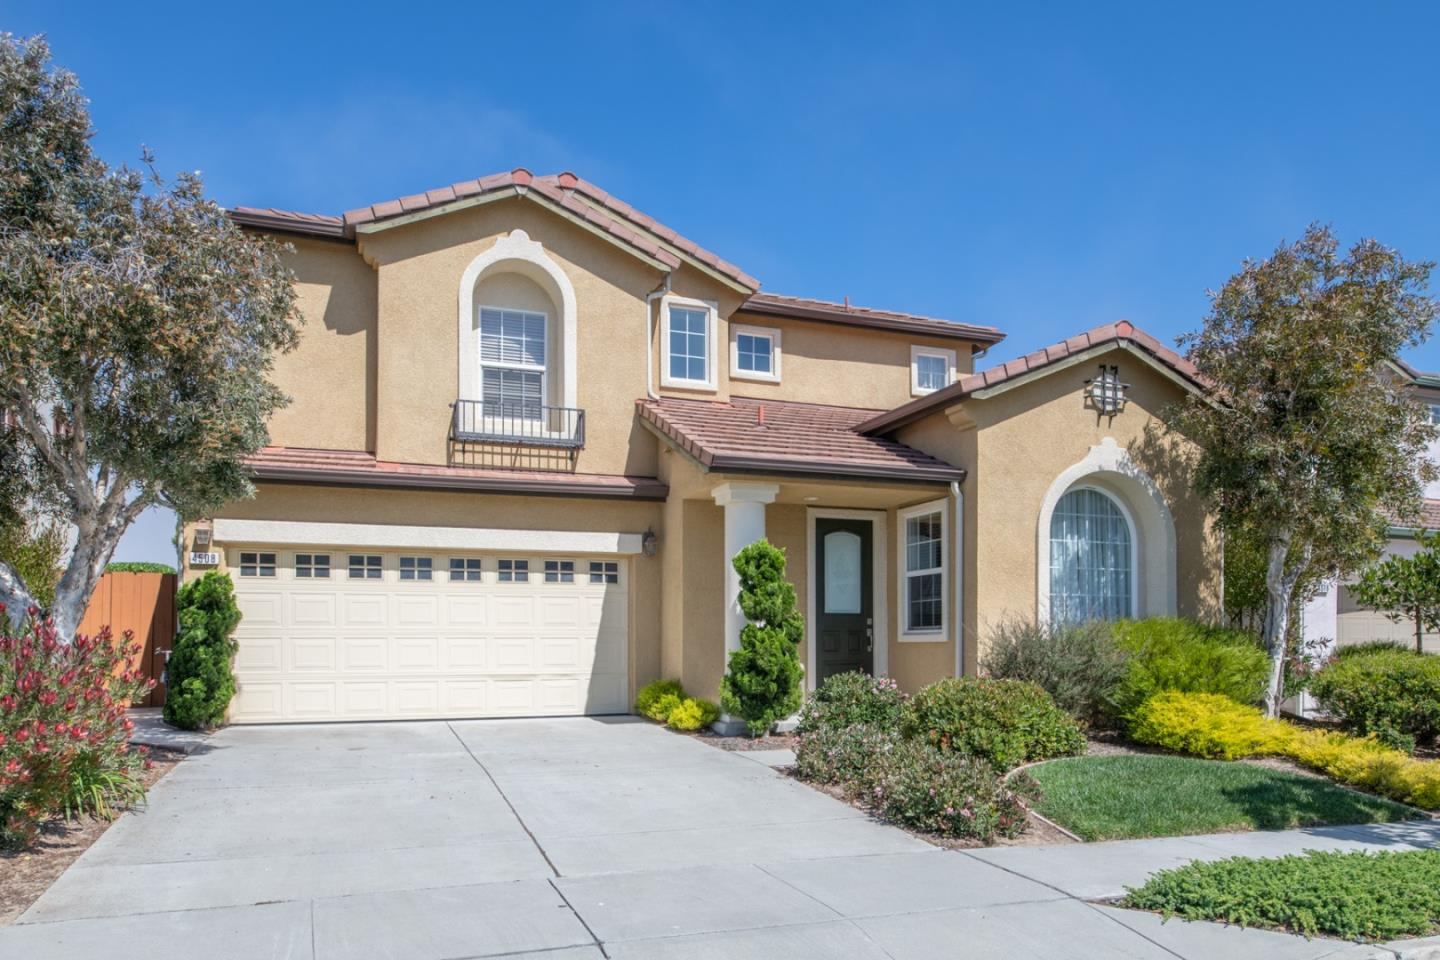 Photo of 4508 Sea Cliff CT, SEASIDE, CA 93955